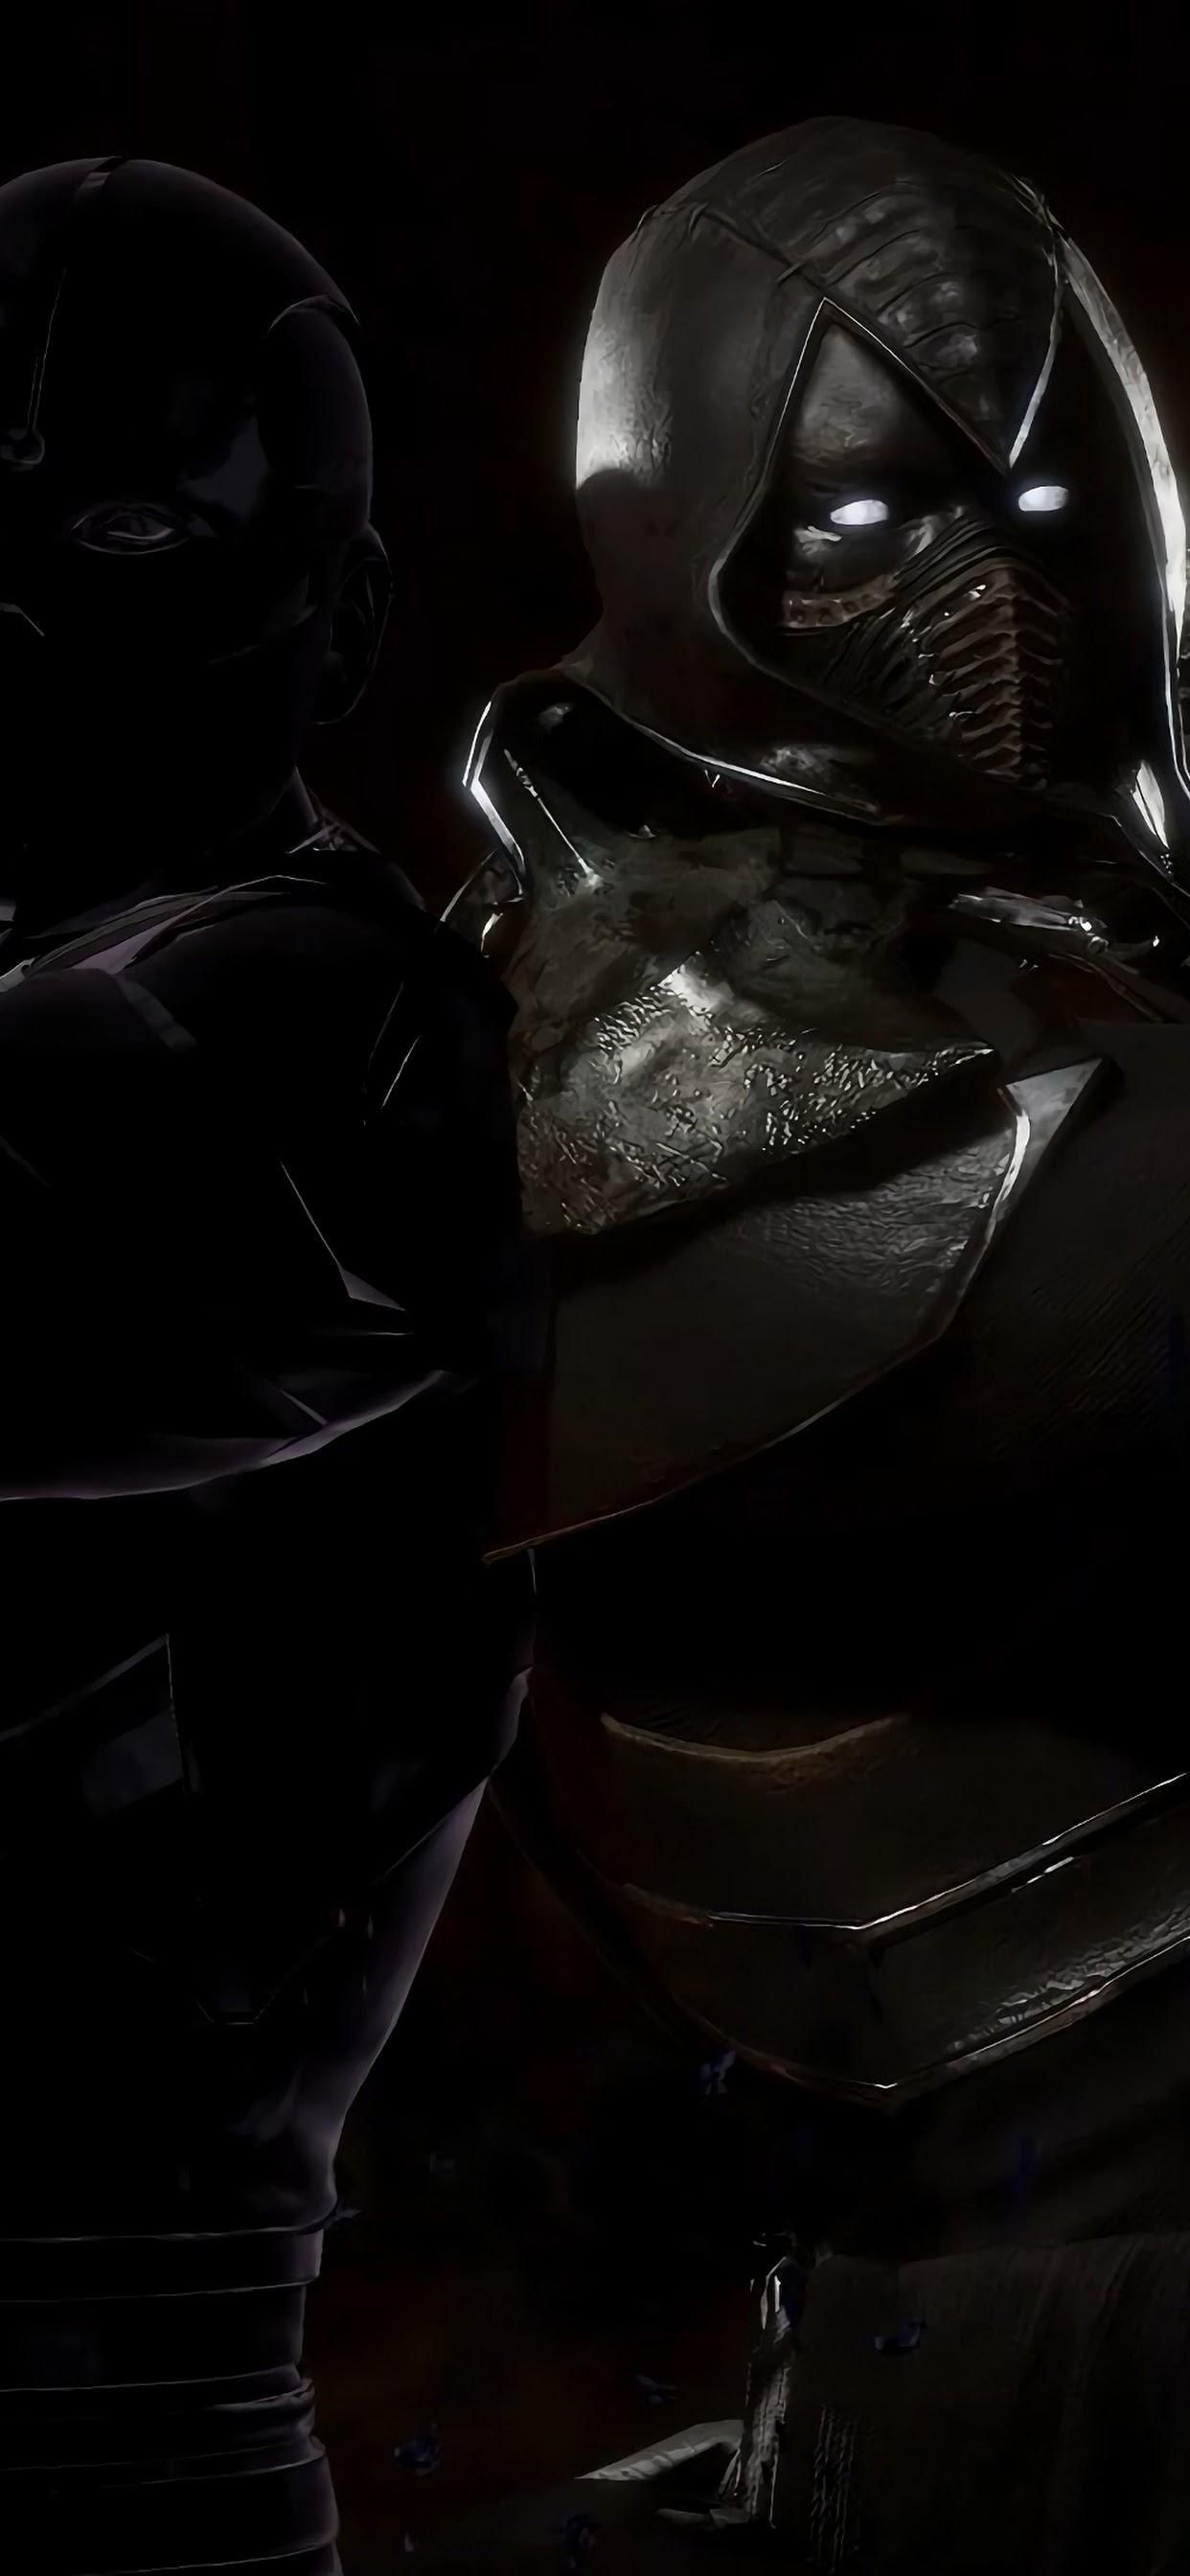 Pin On Galaxie Tapete Noob Saibot Mortal Kombat Iphone Wallpaper